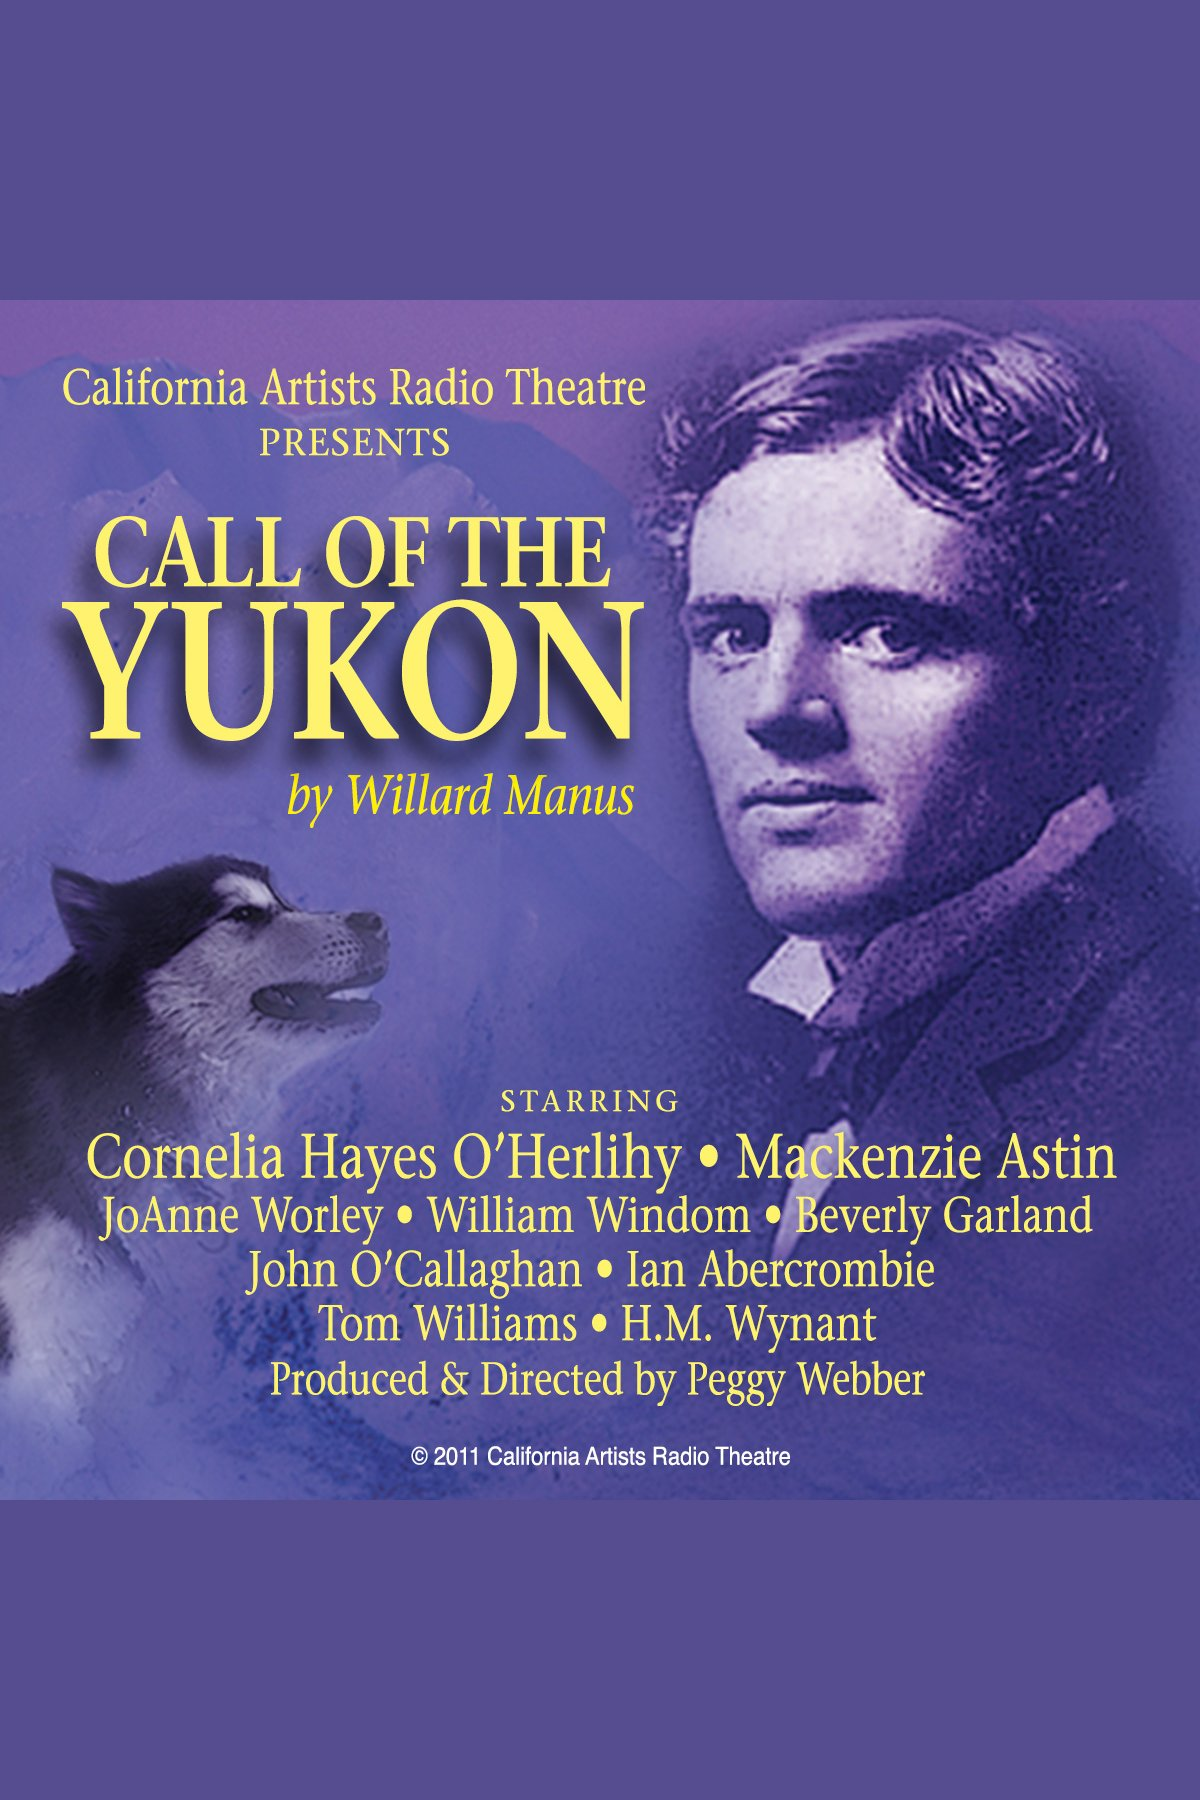 Call Of The Yukon cover image